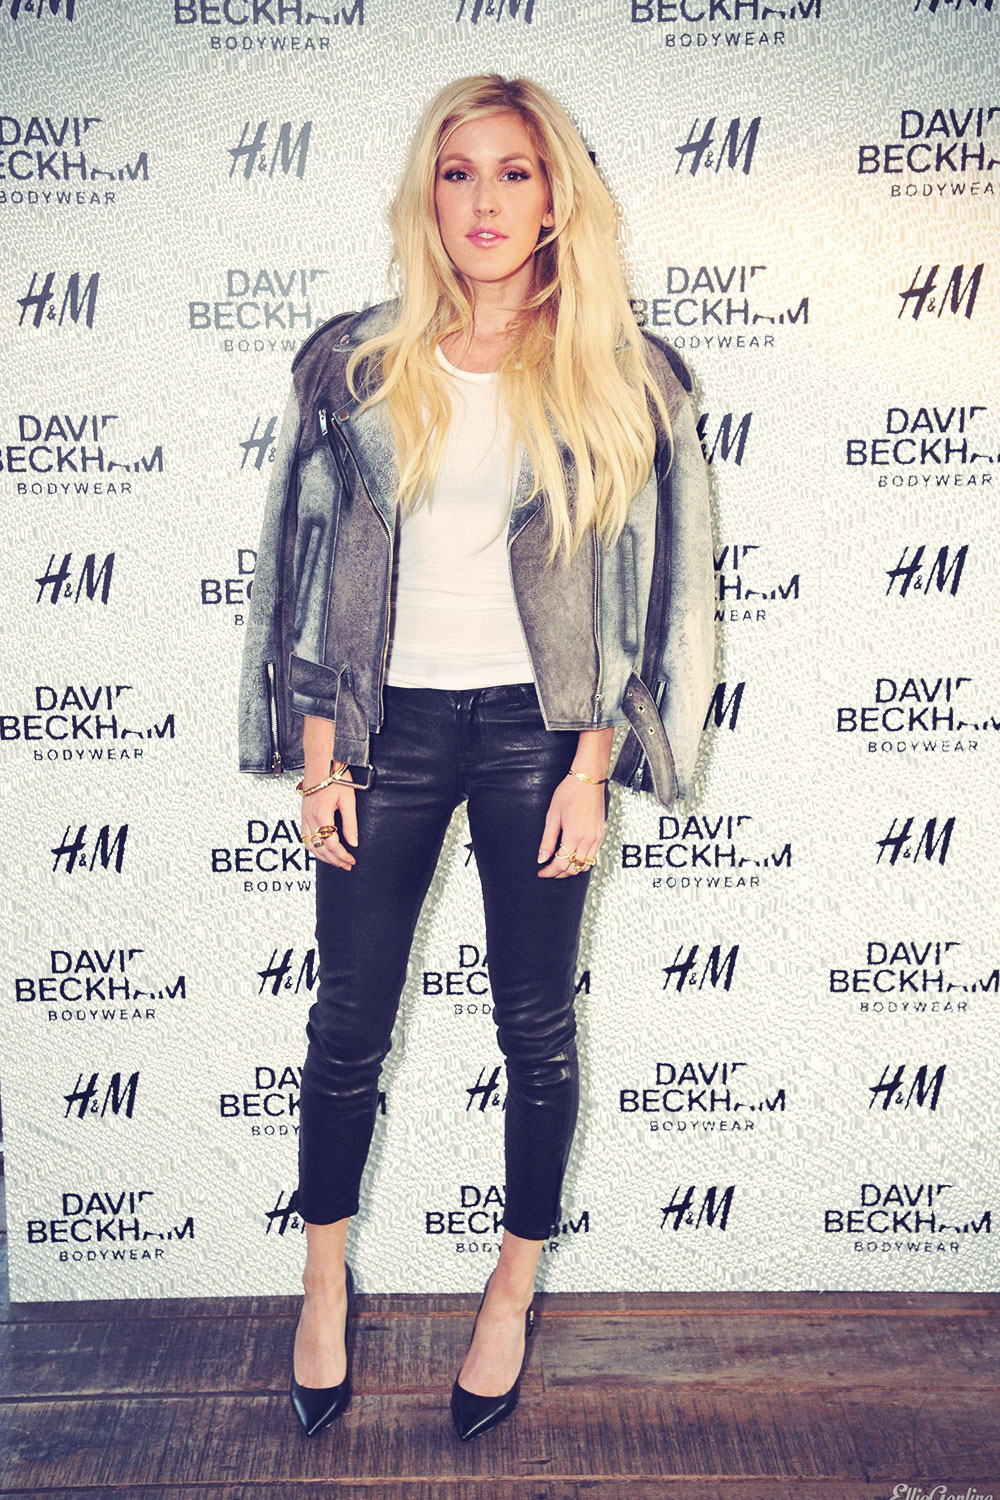 Ellie Goulding attends David Beckham For H&M Swimwear Private Launch